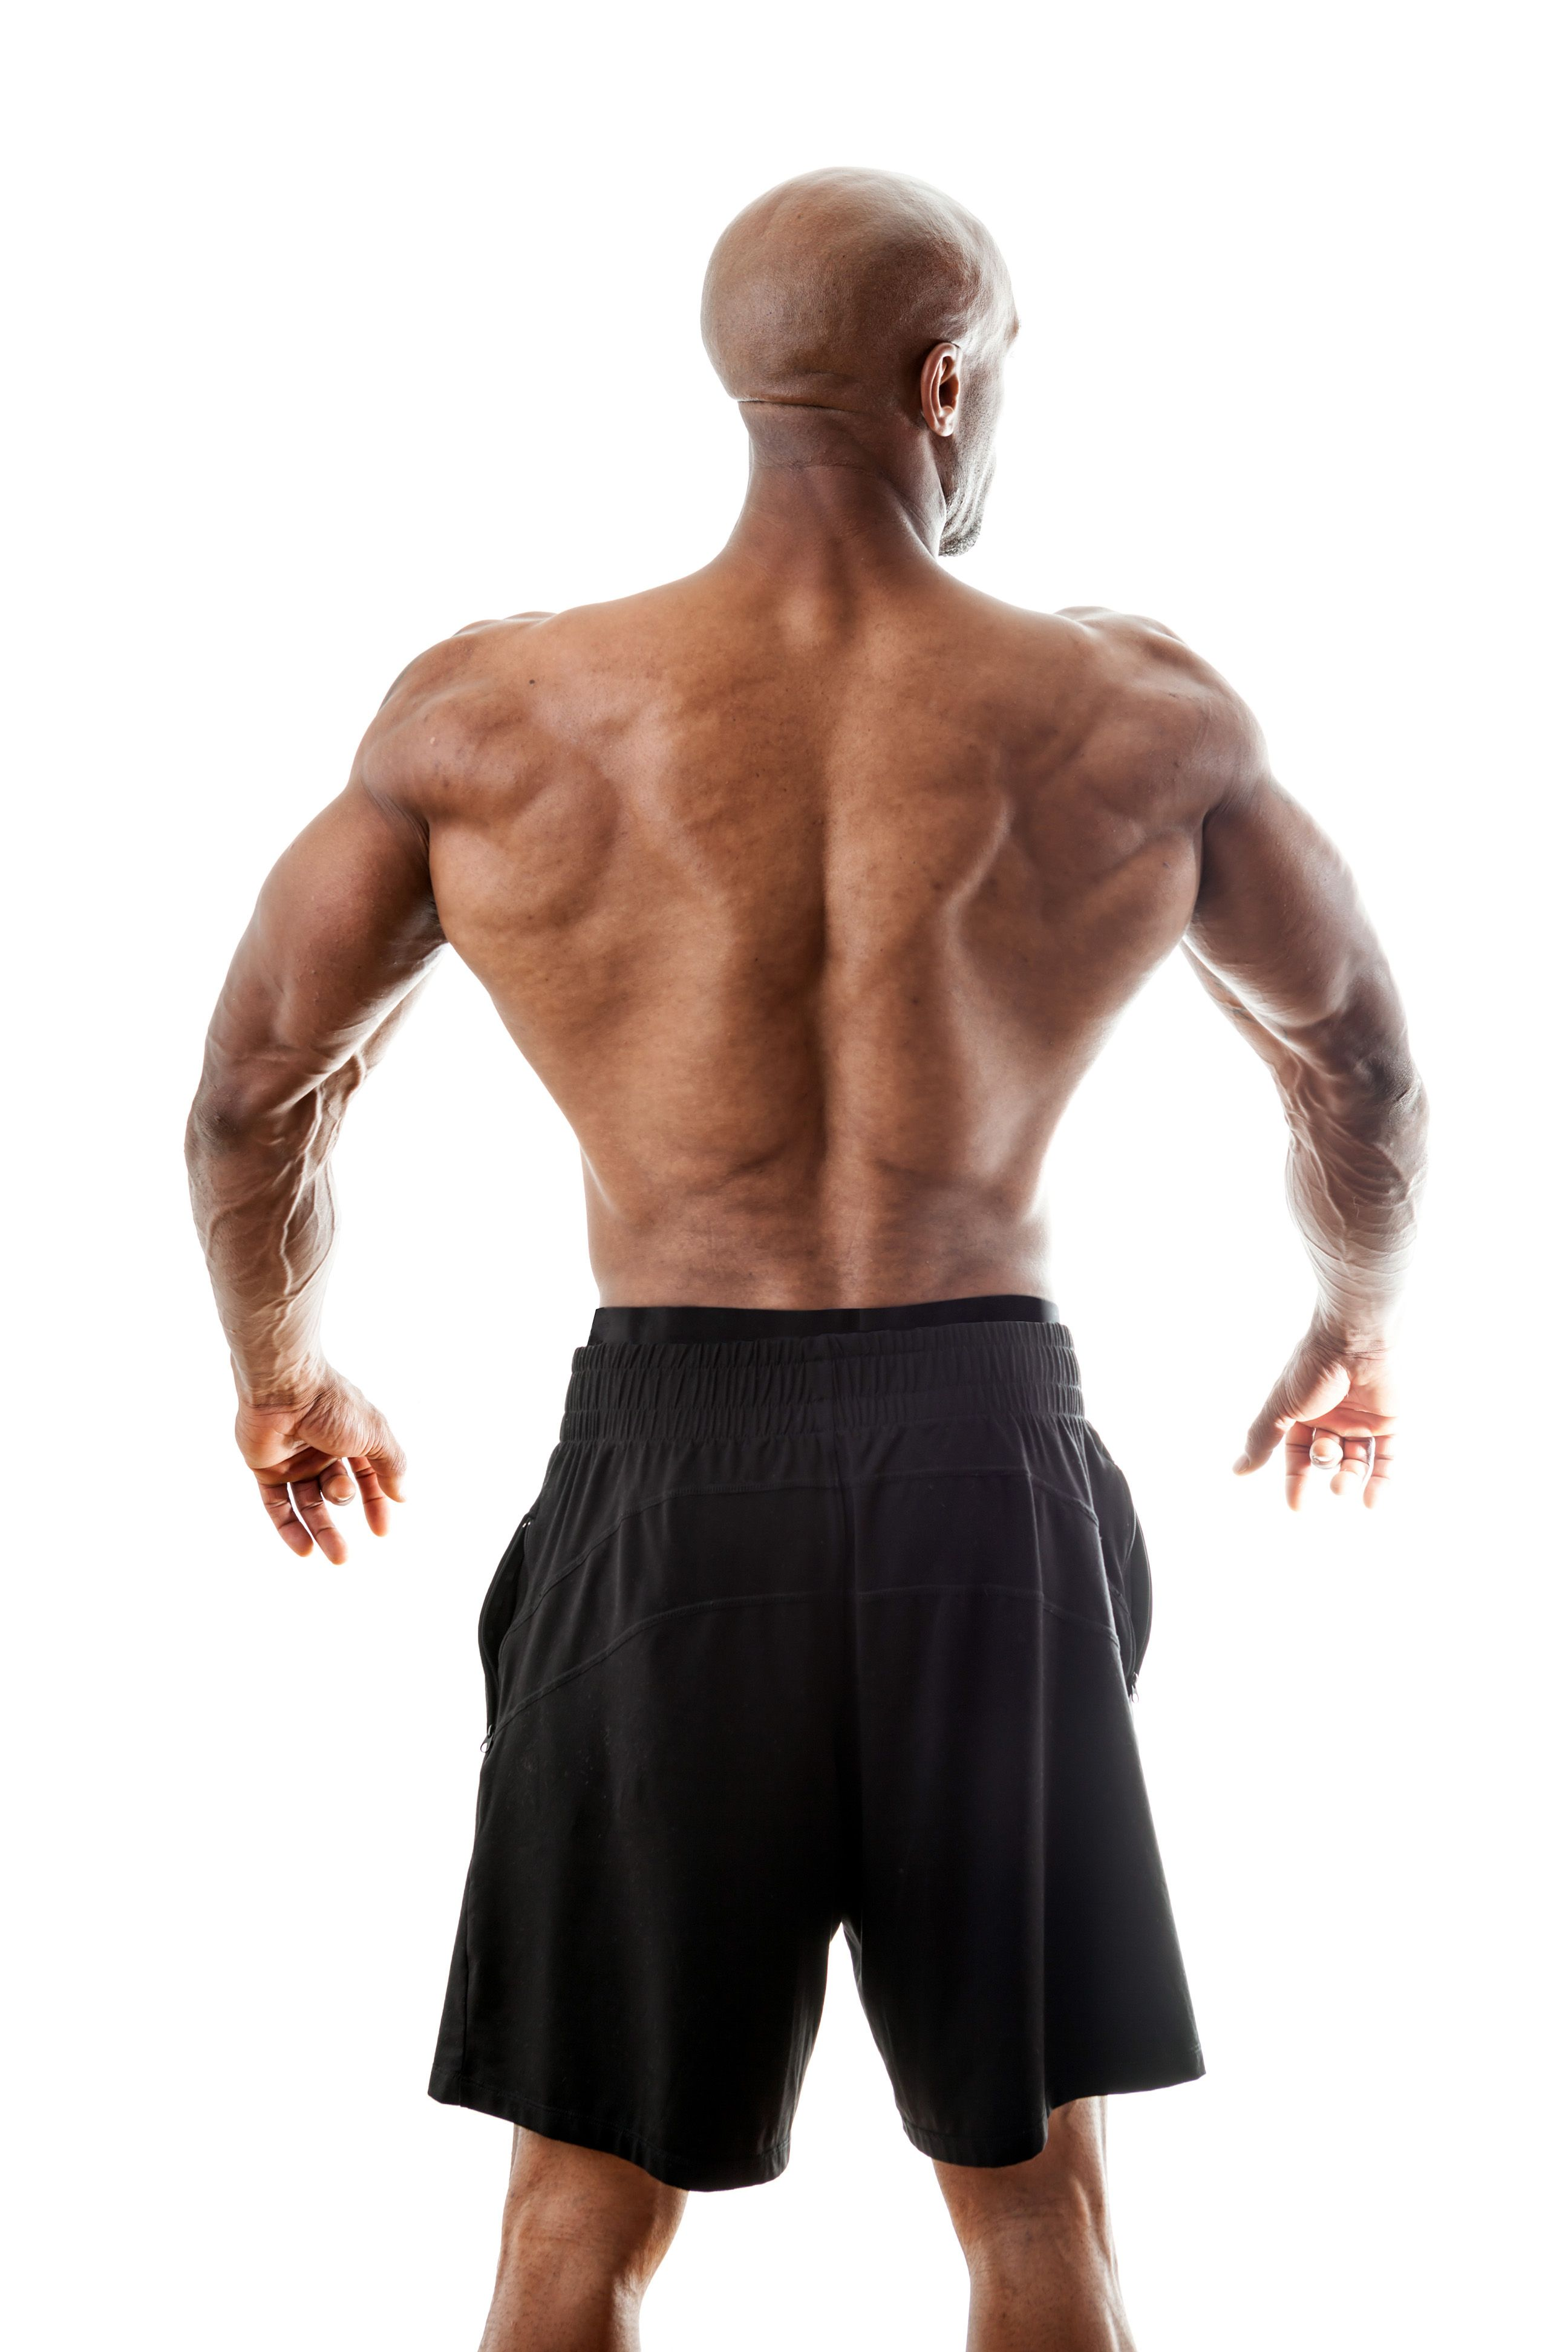 A New & Potent SARMs Stack For Muscle-Building, Fat-Loss